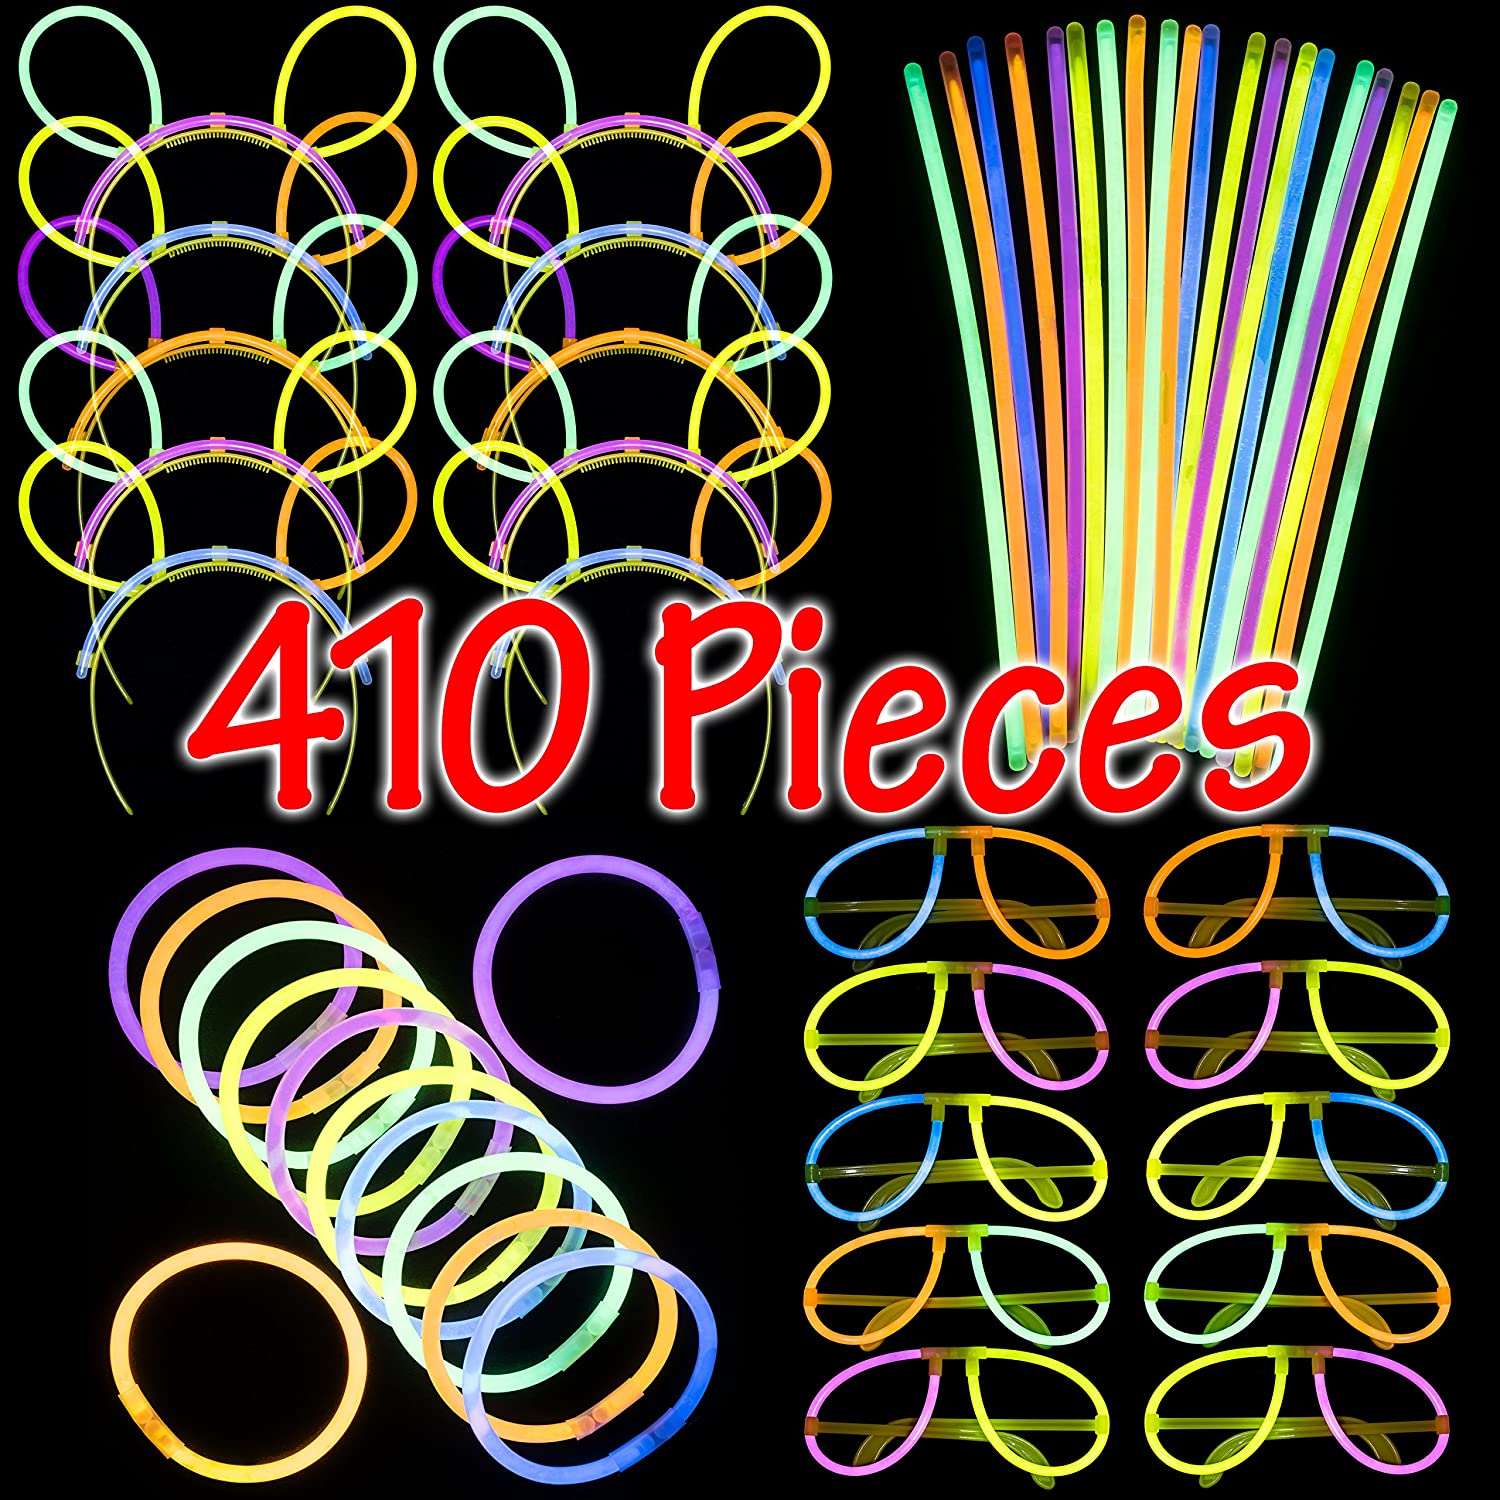 Dragon Too Glow in The Dark Party Supplies - 410 Pieces - Includes Connectors to Create Necklaces, Bracelets, Glasses and Headbands - Glow in The Dark Party Favors